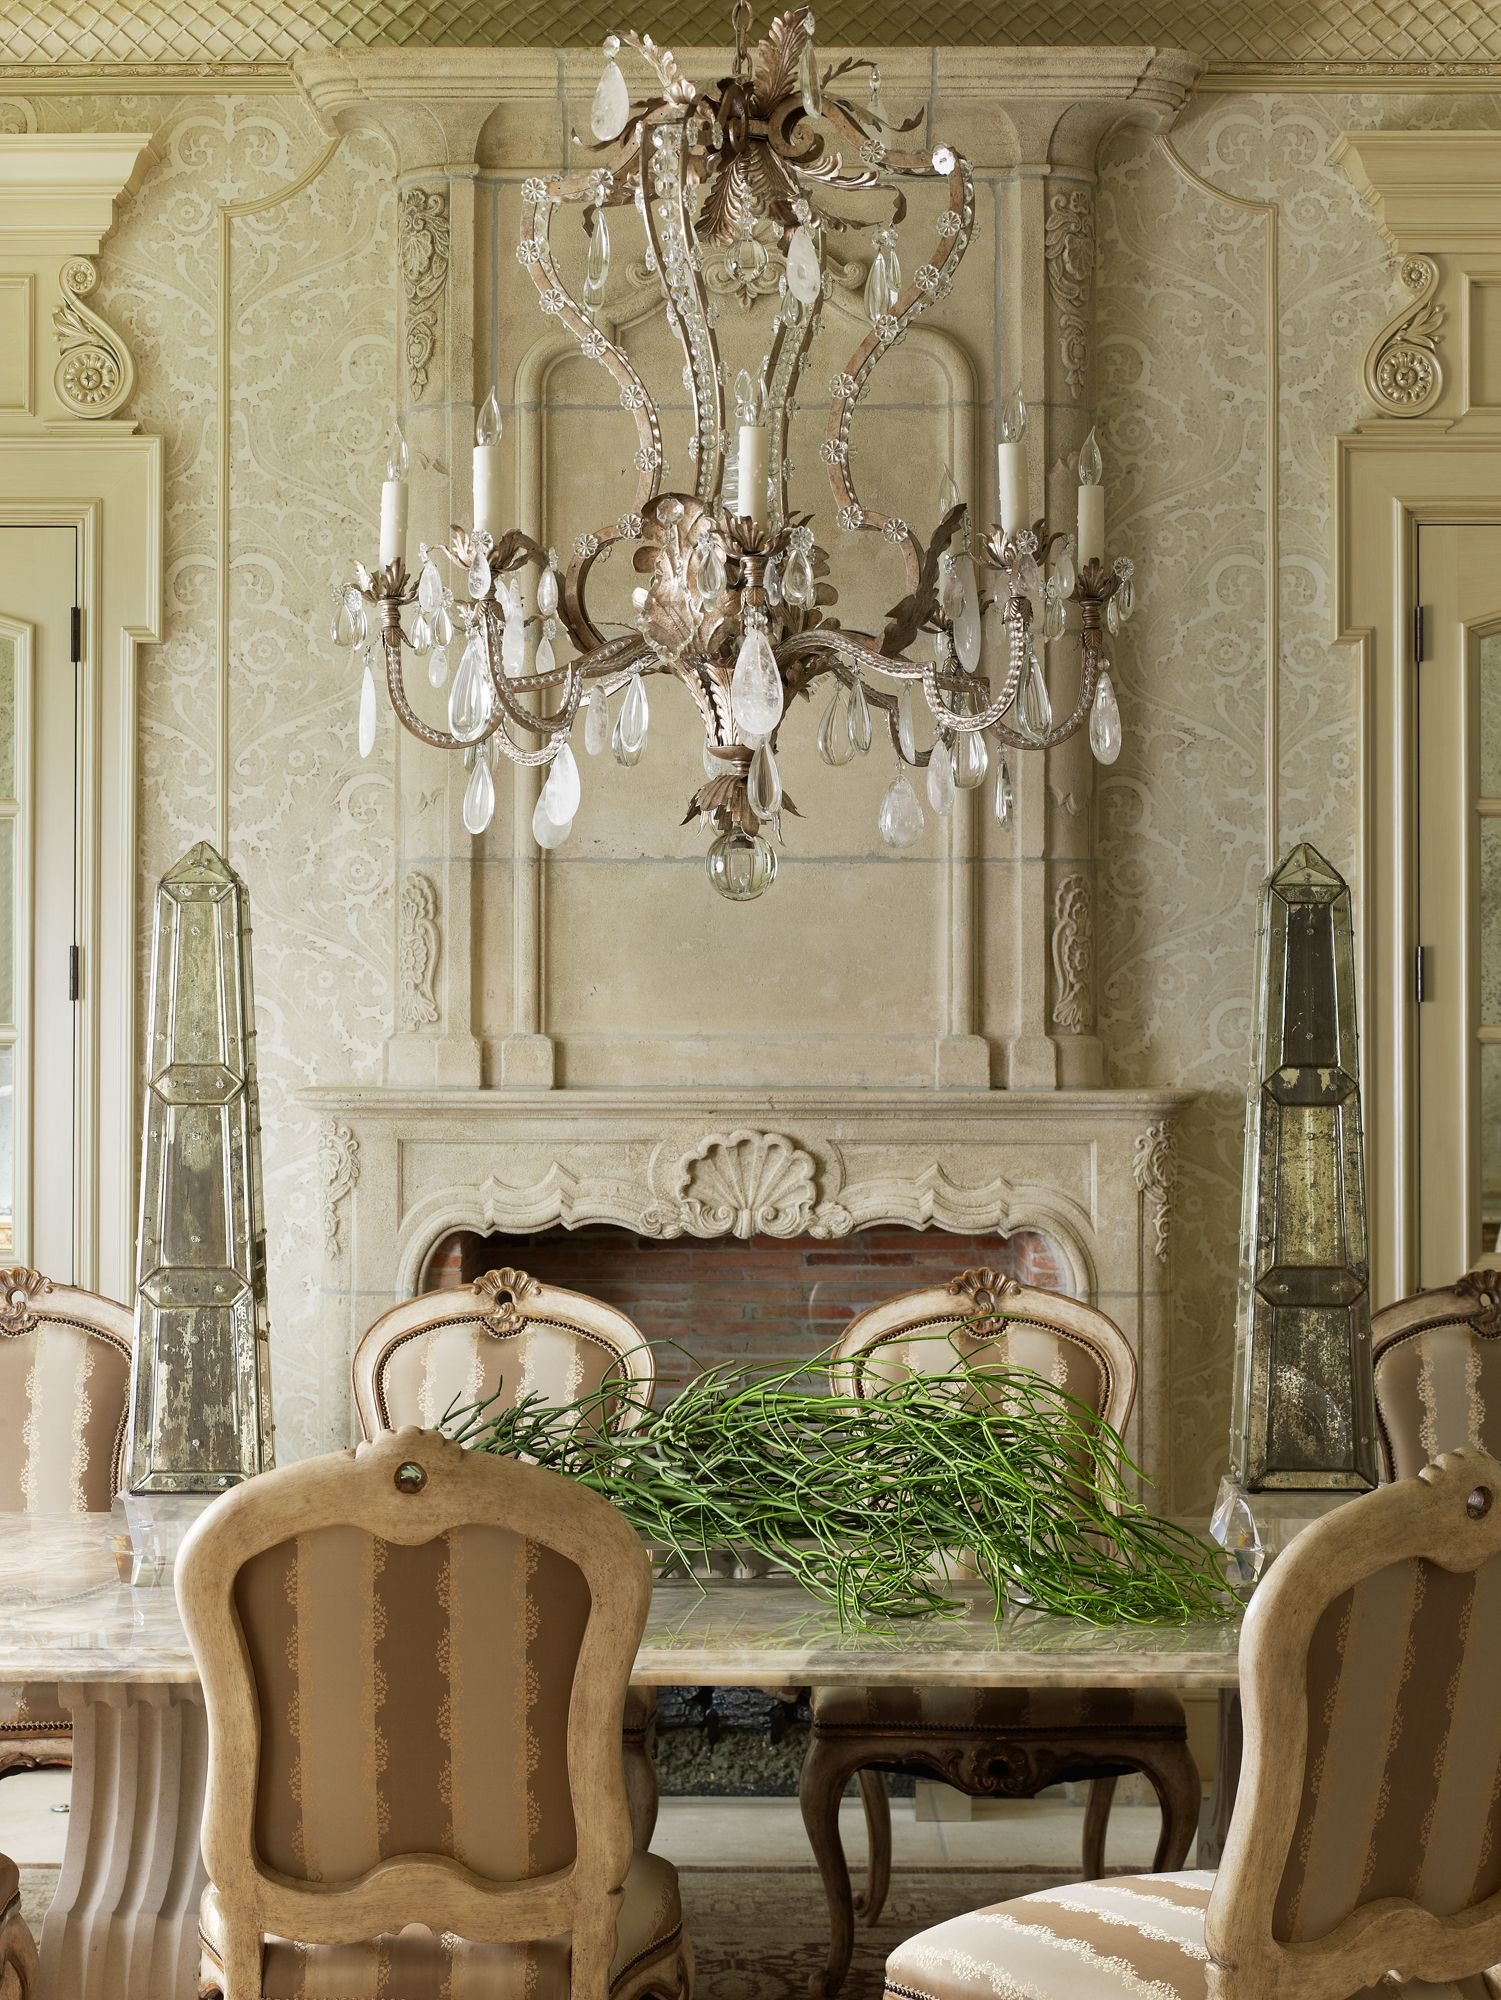 French country formal dining room - Find This Pin And More On French Country Style And Living This Neutral Dining Room